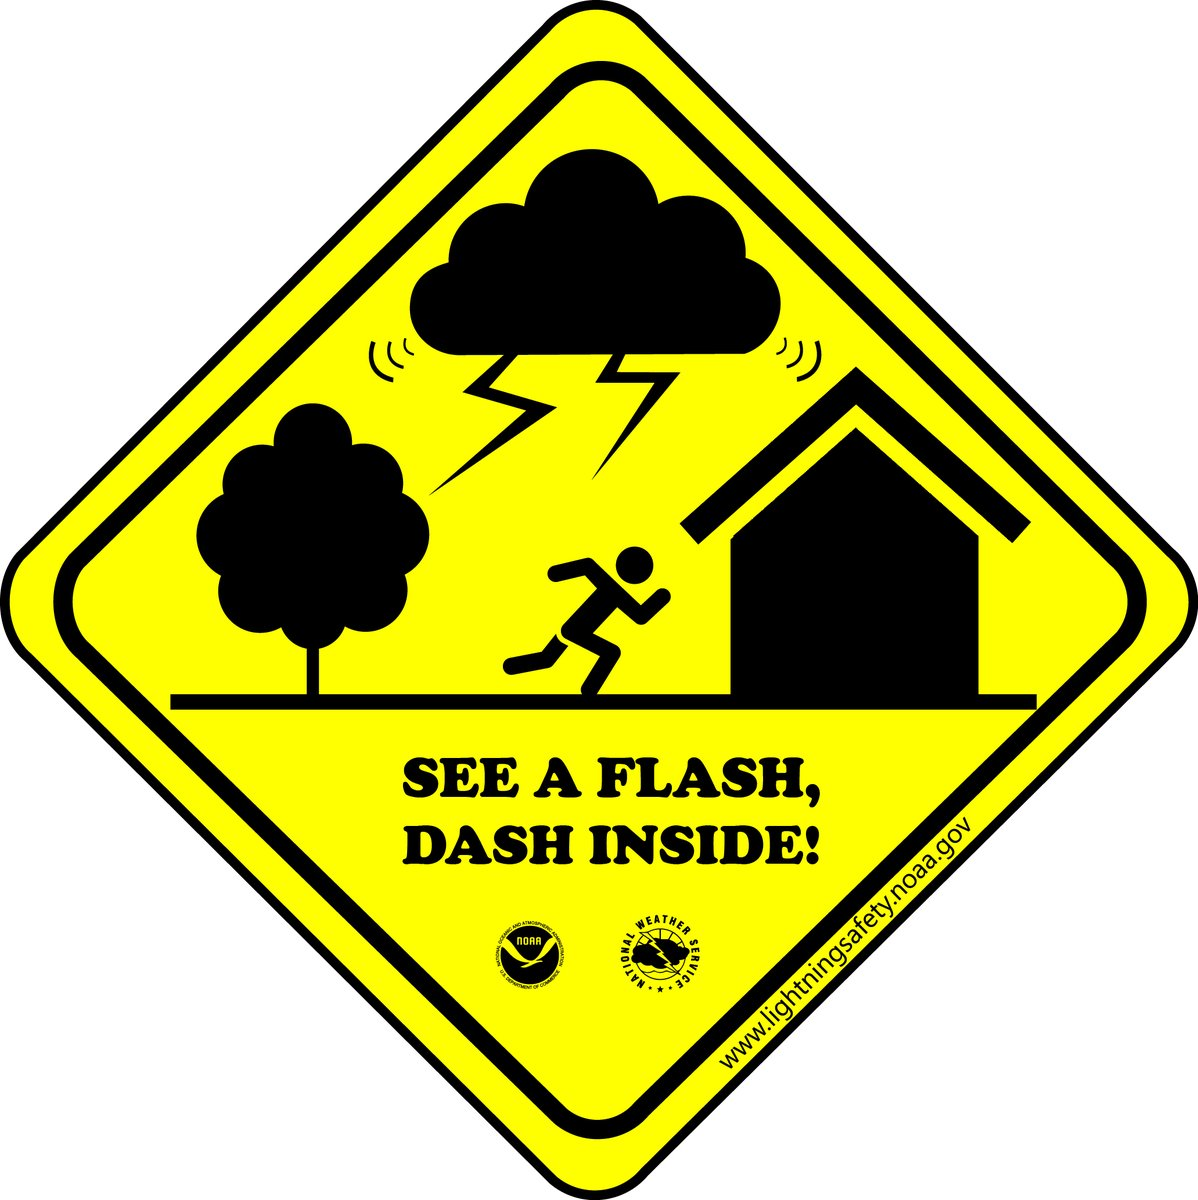 Lightning can strike 10-15 miles from a thunderstorm. Don't wait for rain to send you running indoors.